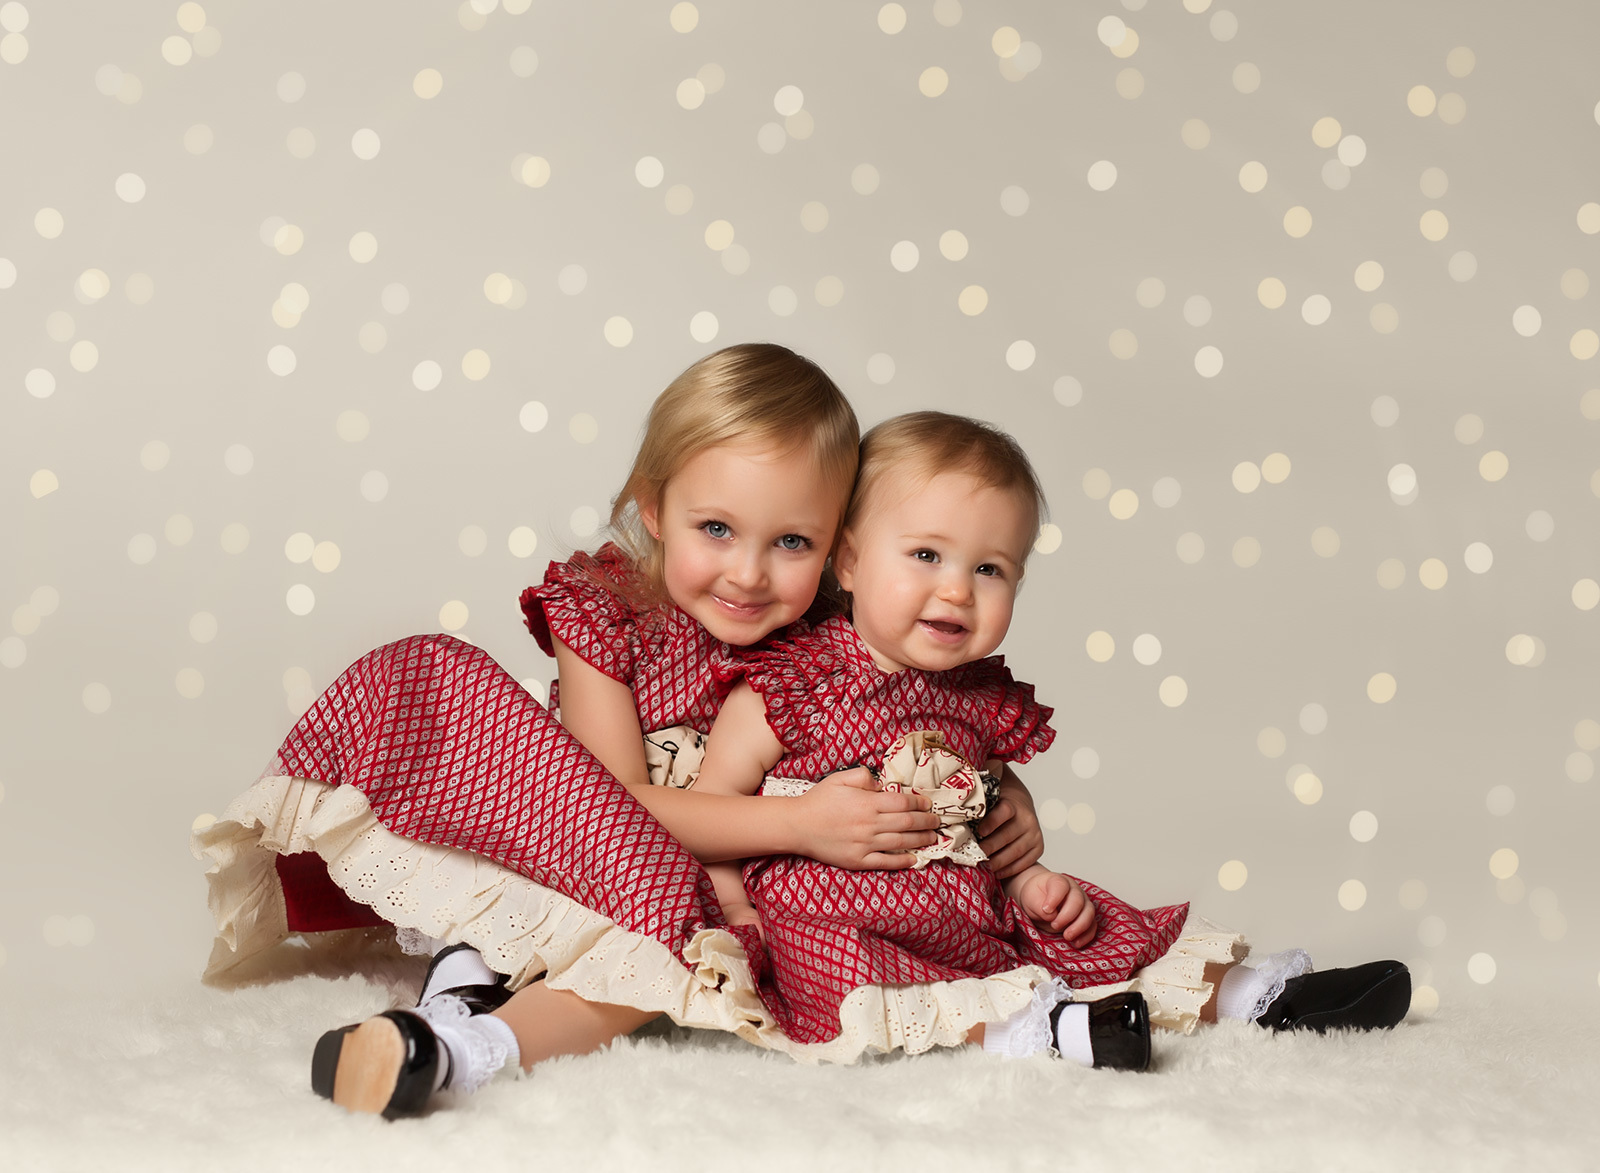 picture of sisters with Christmas lights in the background by Kate Luber